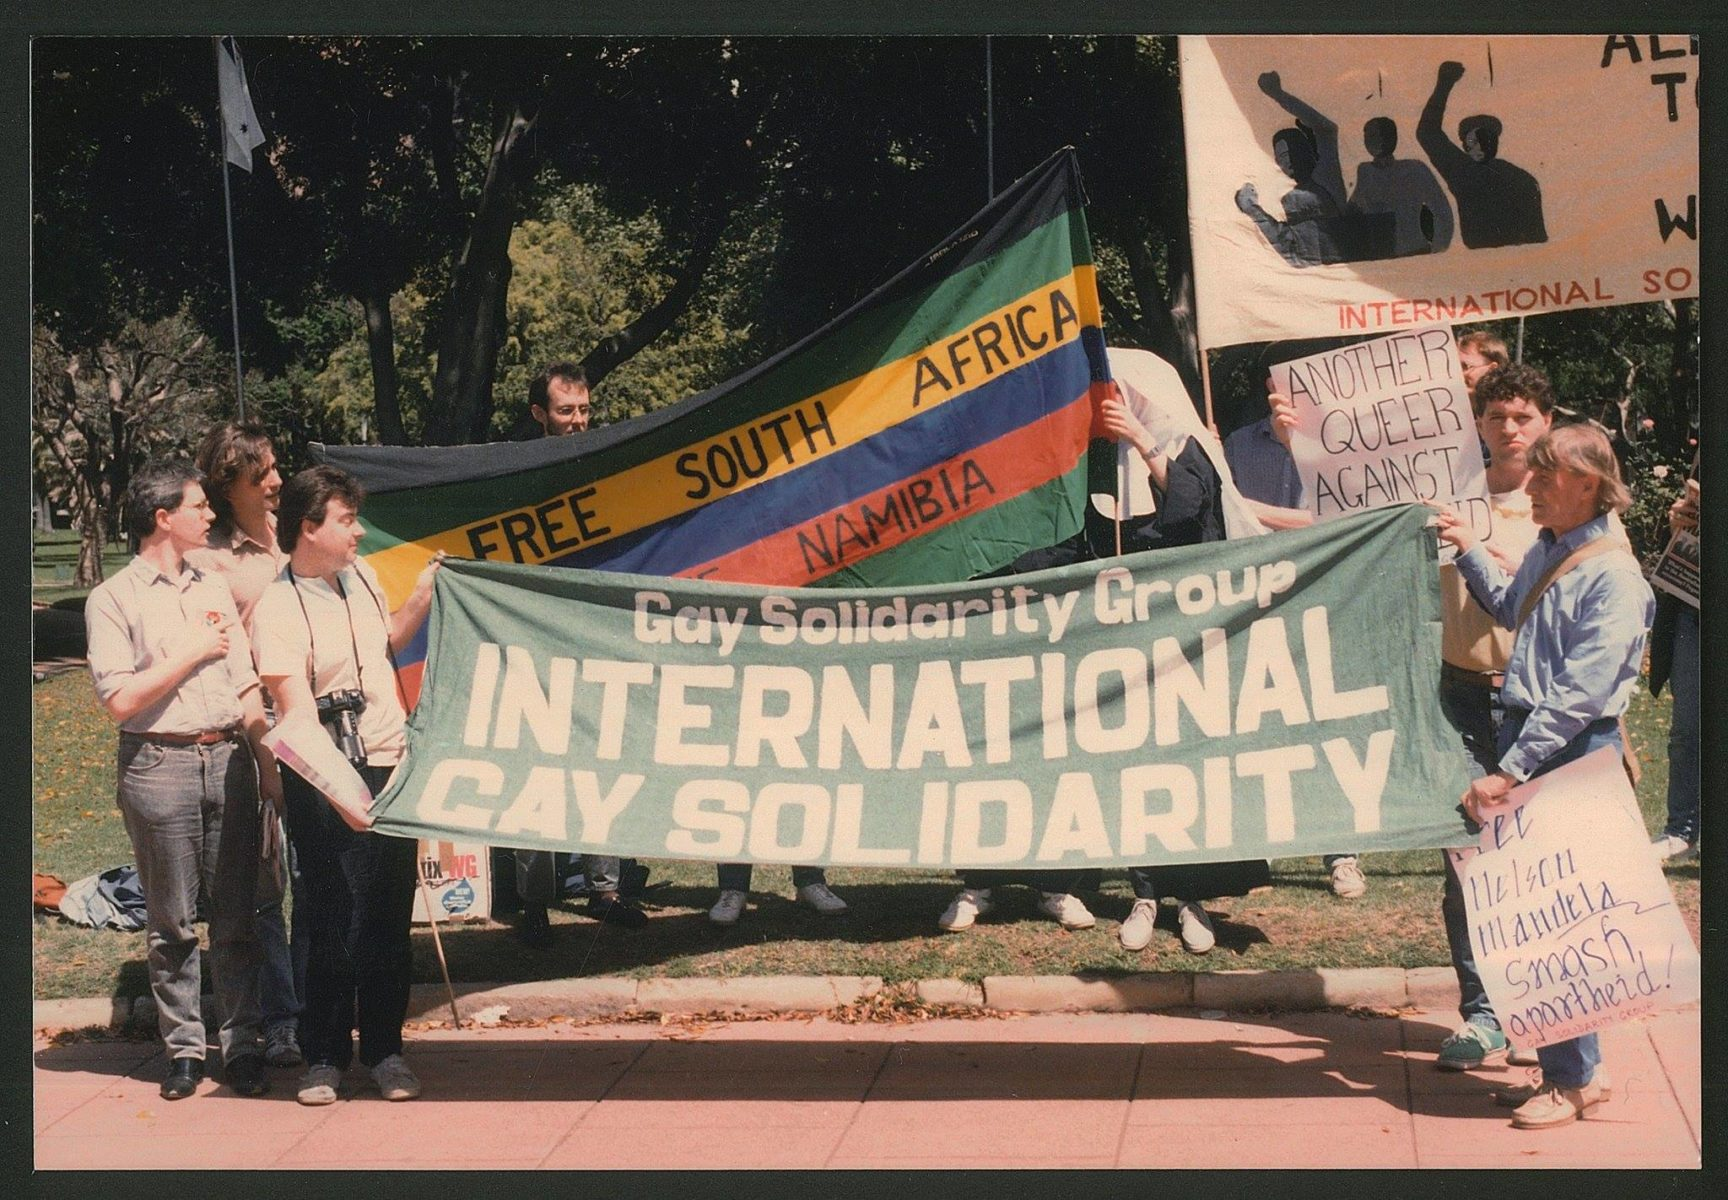 Ken Lovett (far right) with the Gay Solidarity Group at an anti-apartheid rally, Hyde Park Square, Sydney, NSW, c. March 1988